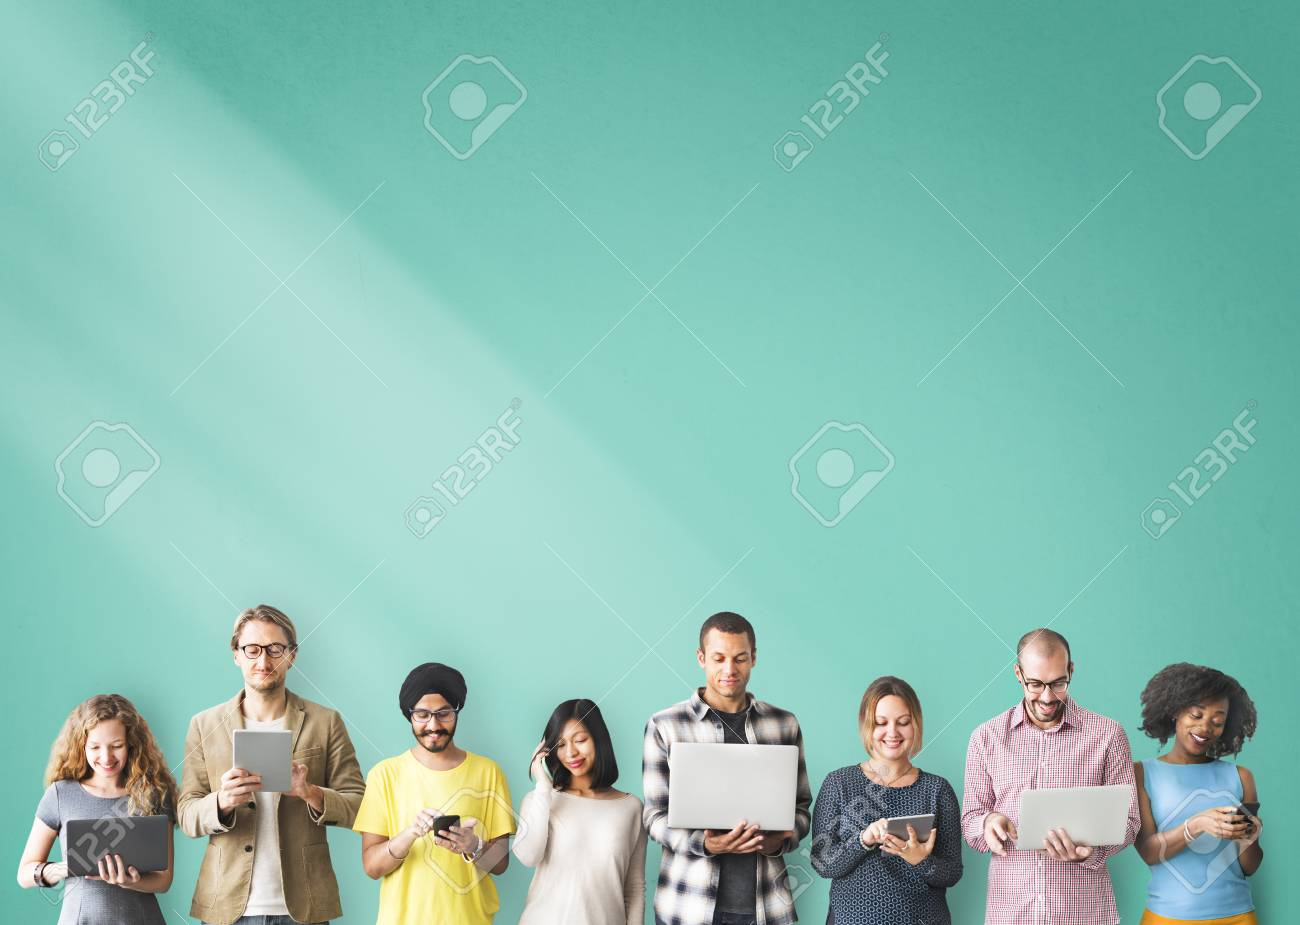 Group of People Connection Digital Device Concept - 53722065